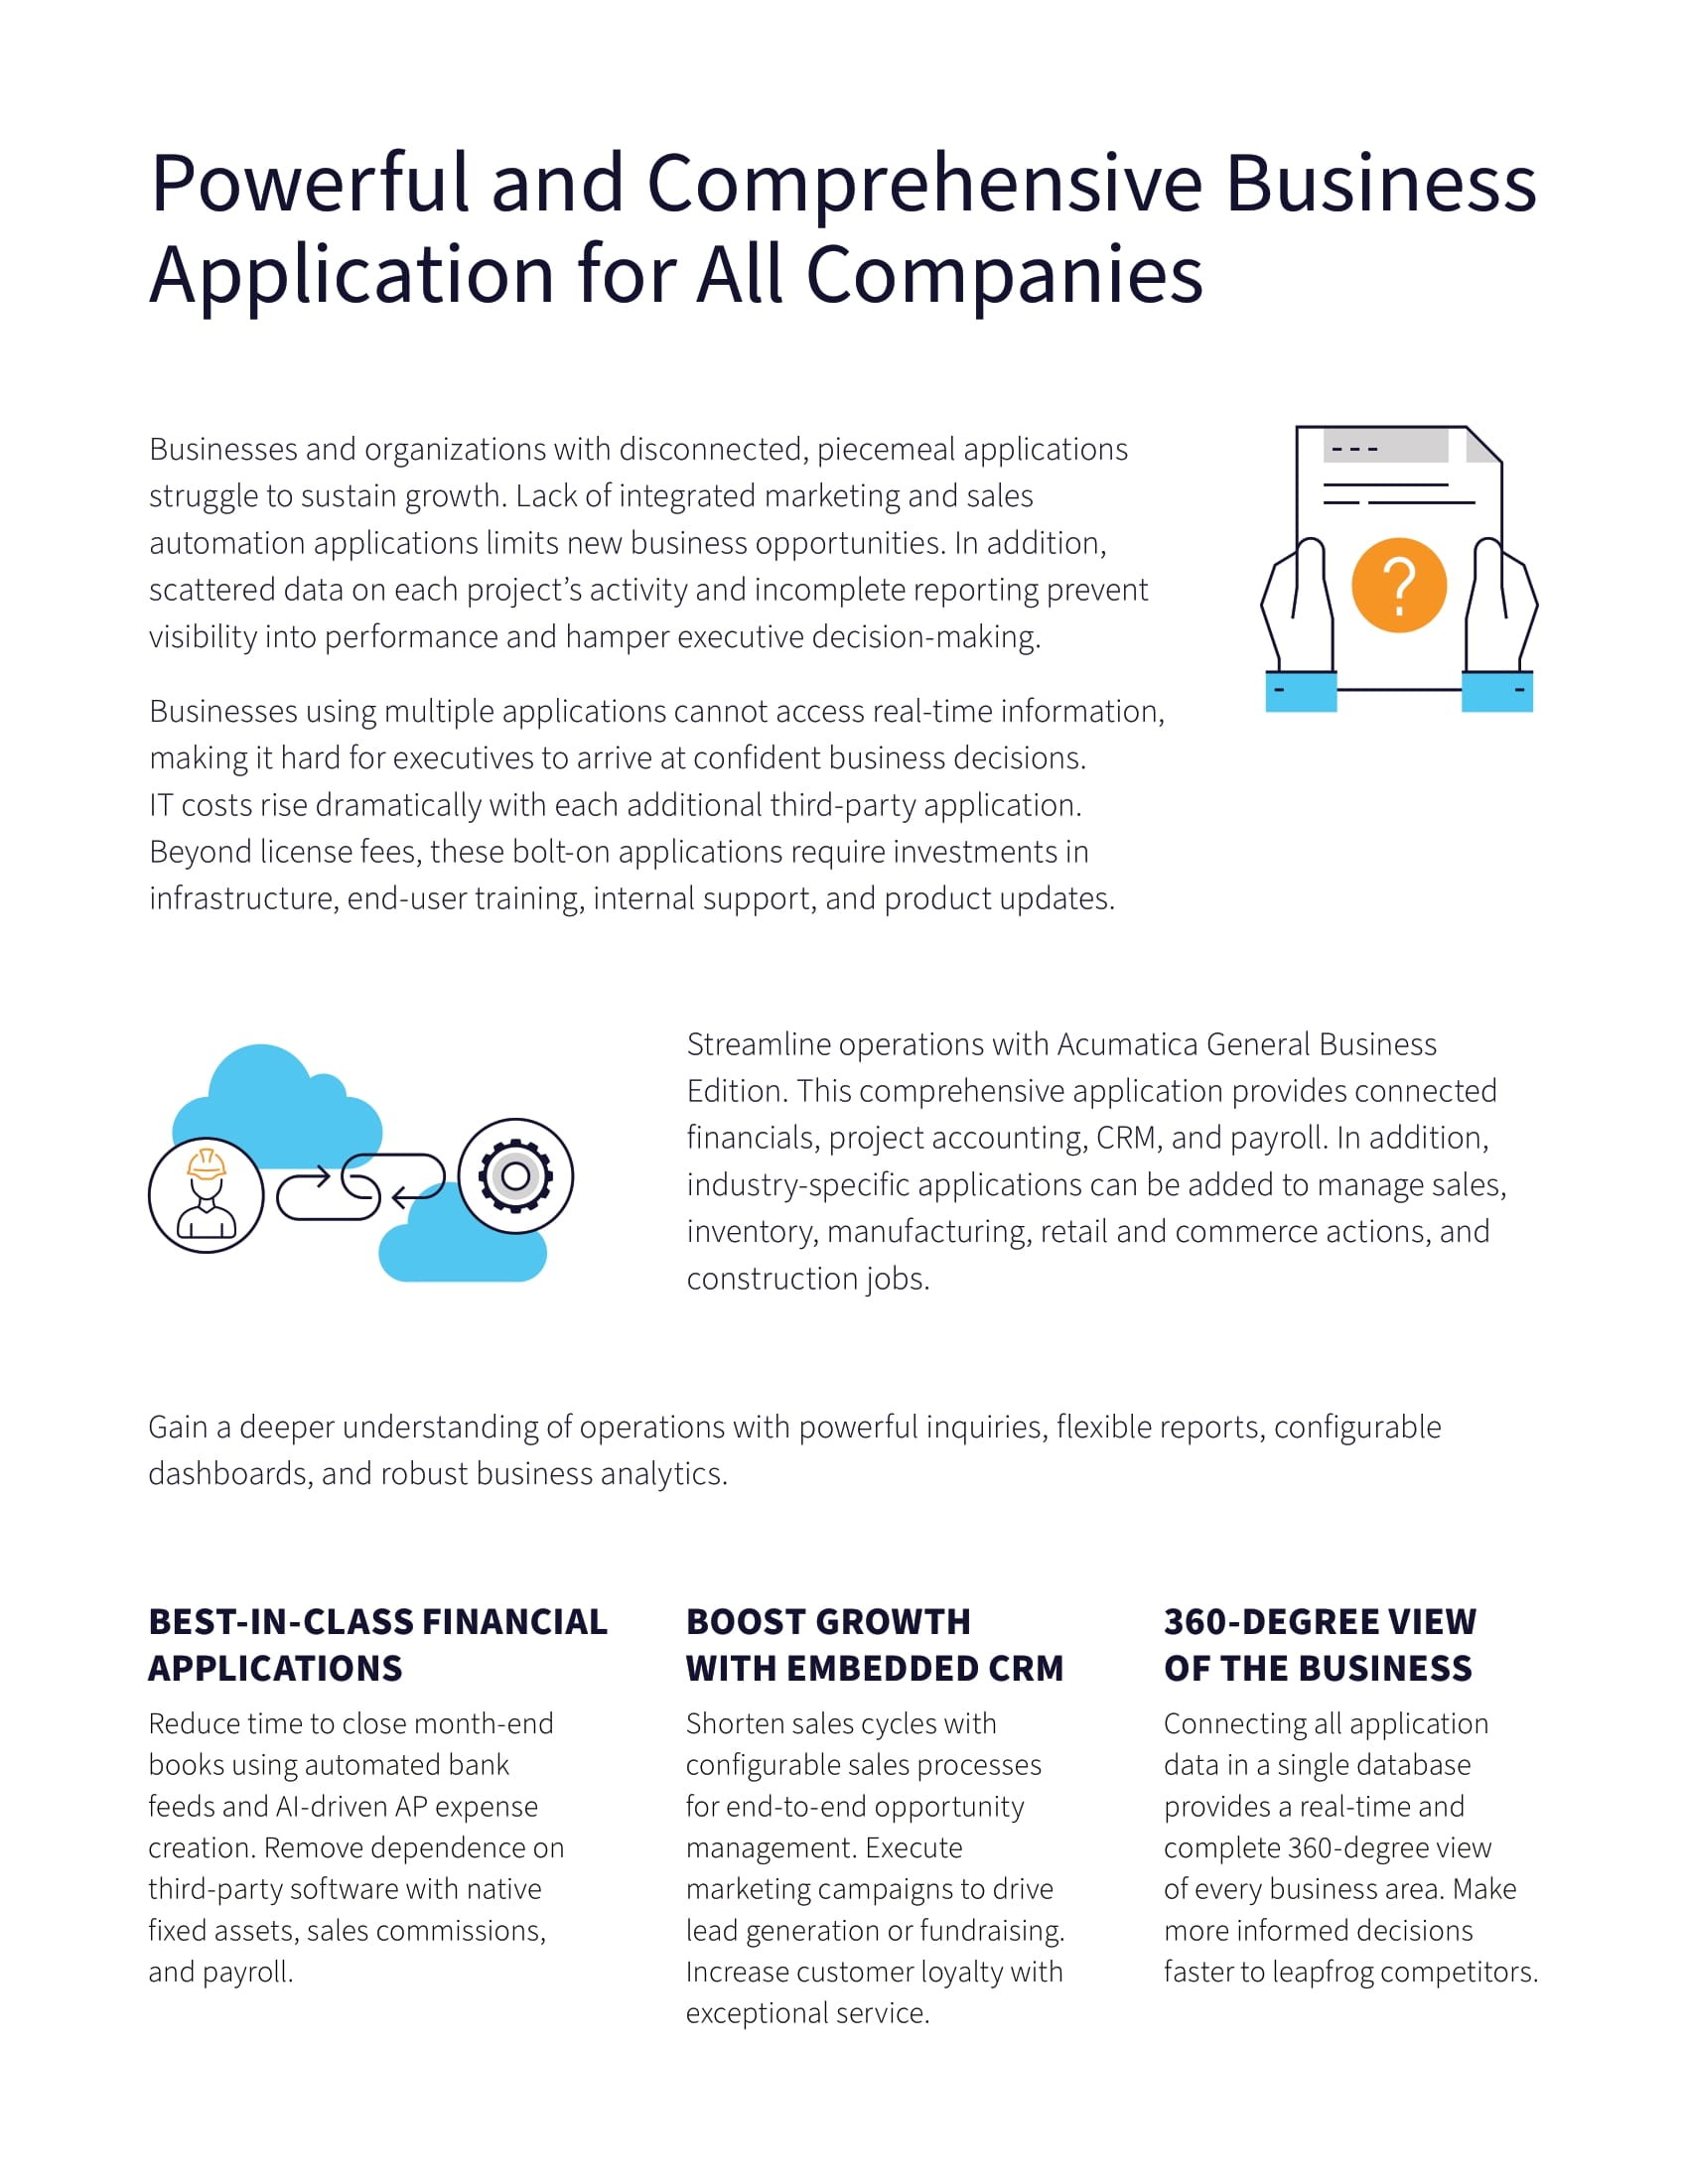 How to Grow Your Business Faster with Cloud ERP, page 1